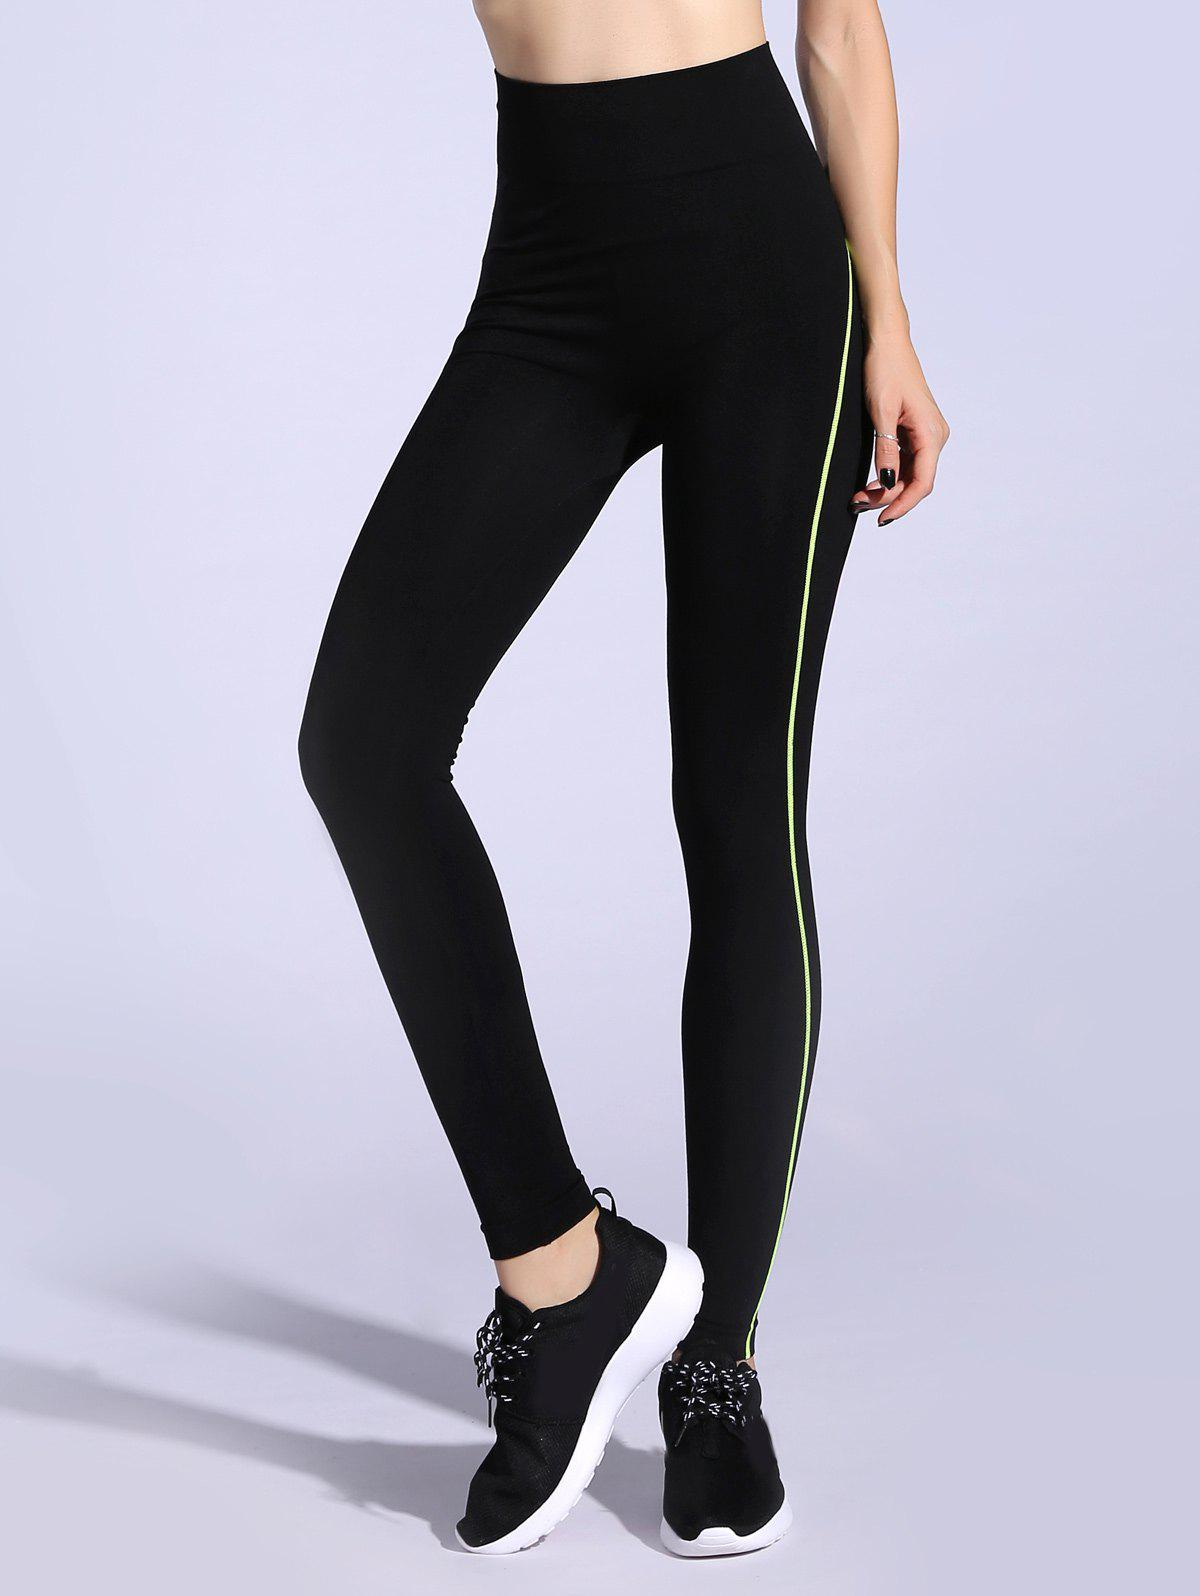 Best Slimming & Shaping Leggings for your Leg Training. All those who say shaping leggings aren't pants are lying! They are pants and if you ask me, they are better than pants! They are more like a look, a vibe, and we're all for it.